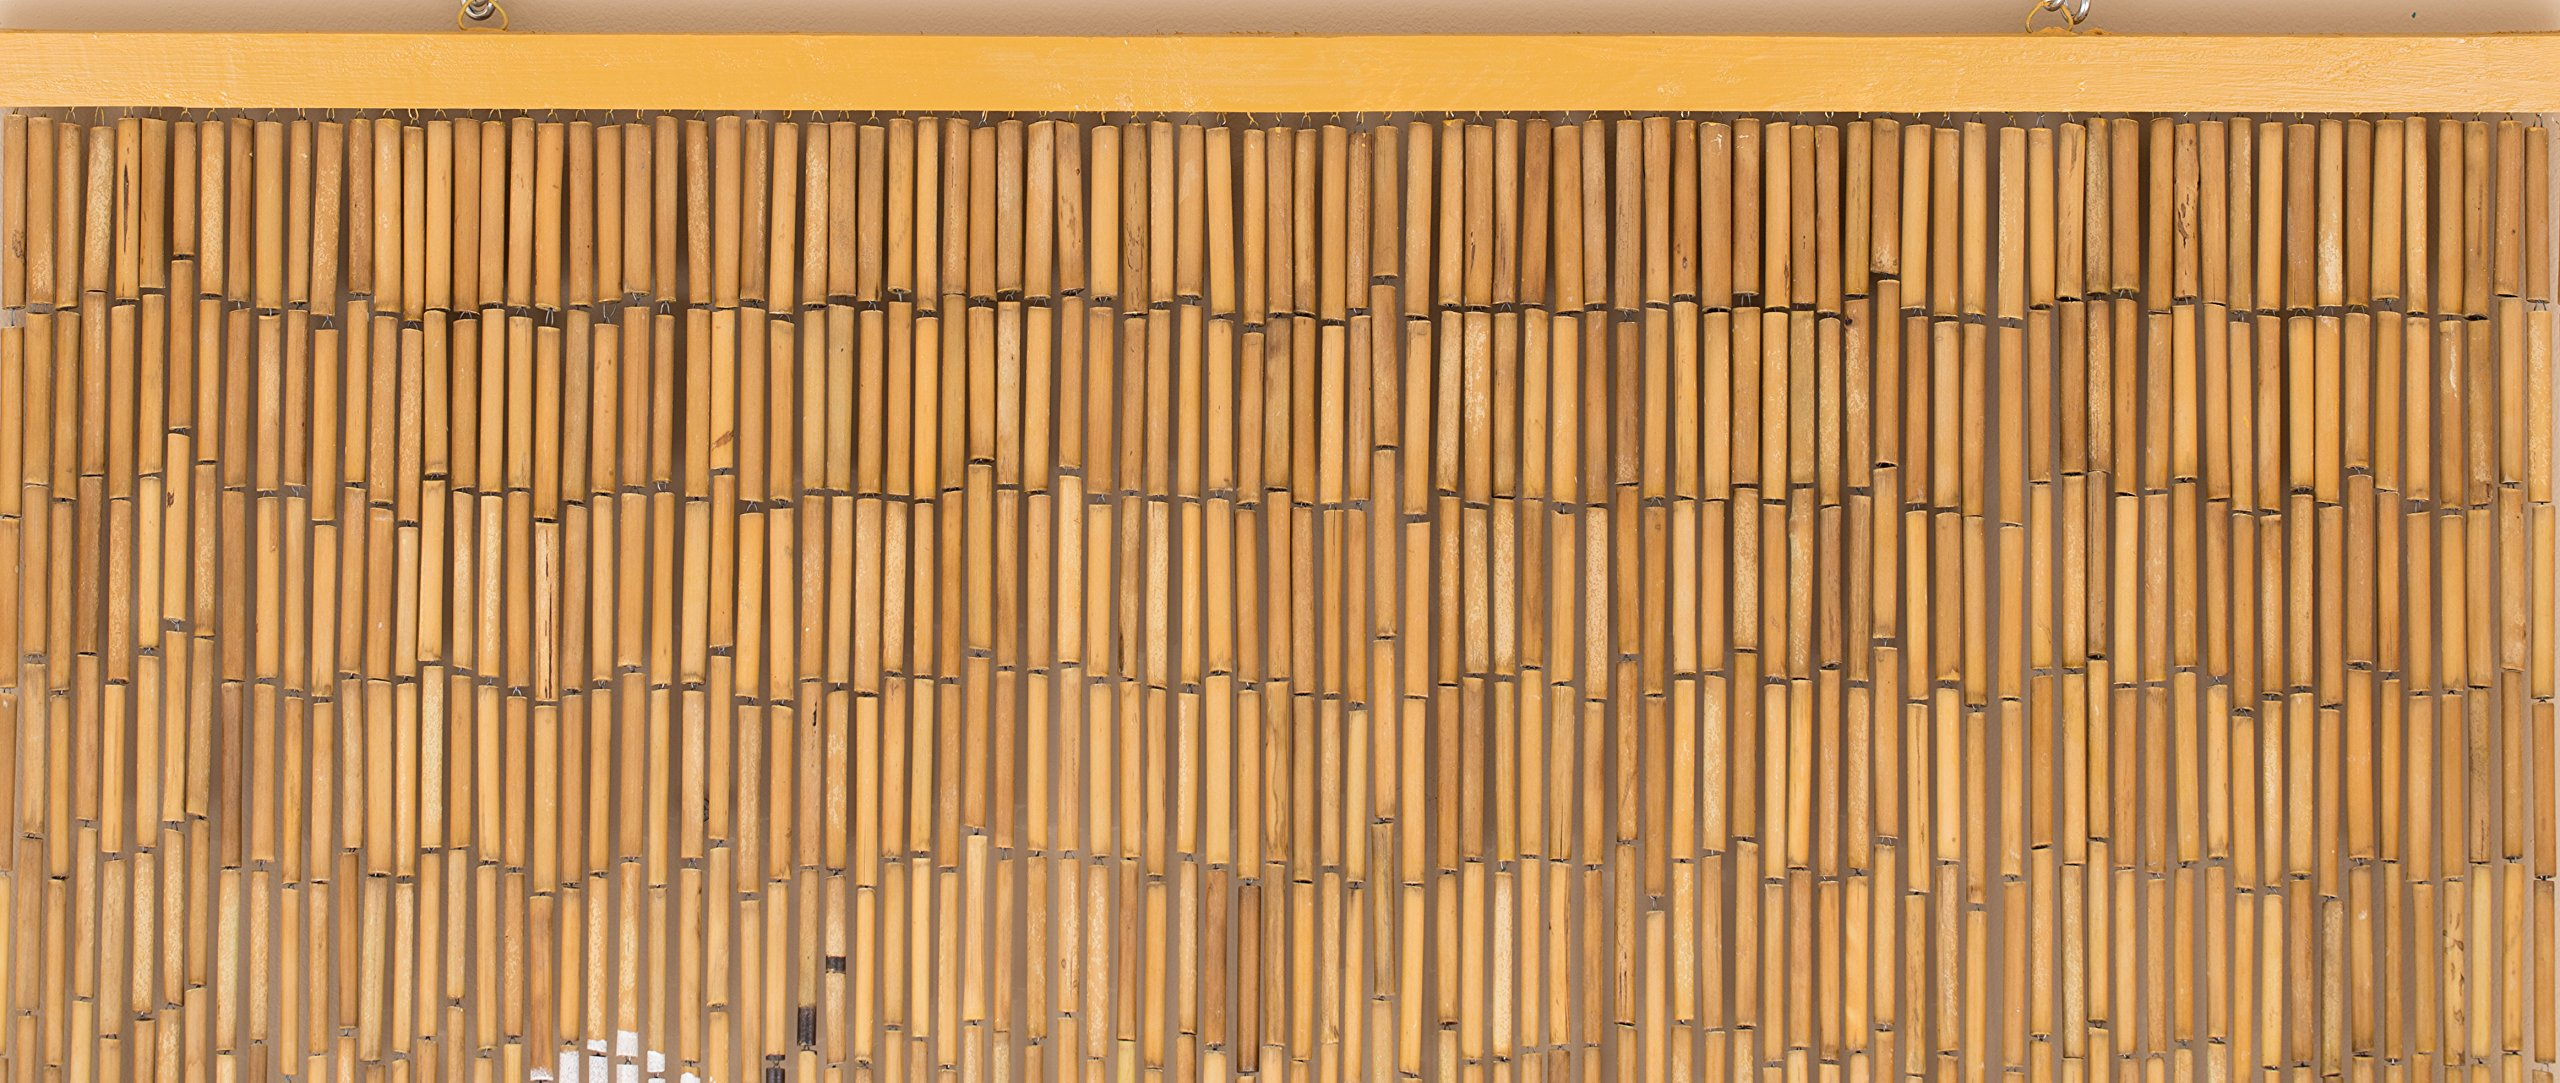 BeadedString Natural Bamboo Wood Beaded Curtain-90 Starnds-80 High-Boho Door Beads-Bohemian Doorway Curtain-35.5'' Wx80 H-Blossom by BeadedString (Image #9)